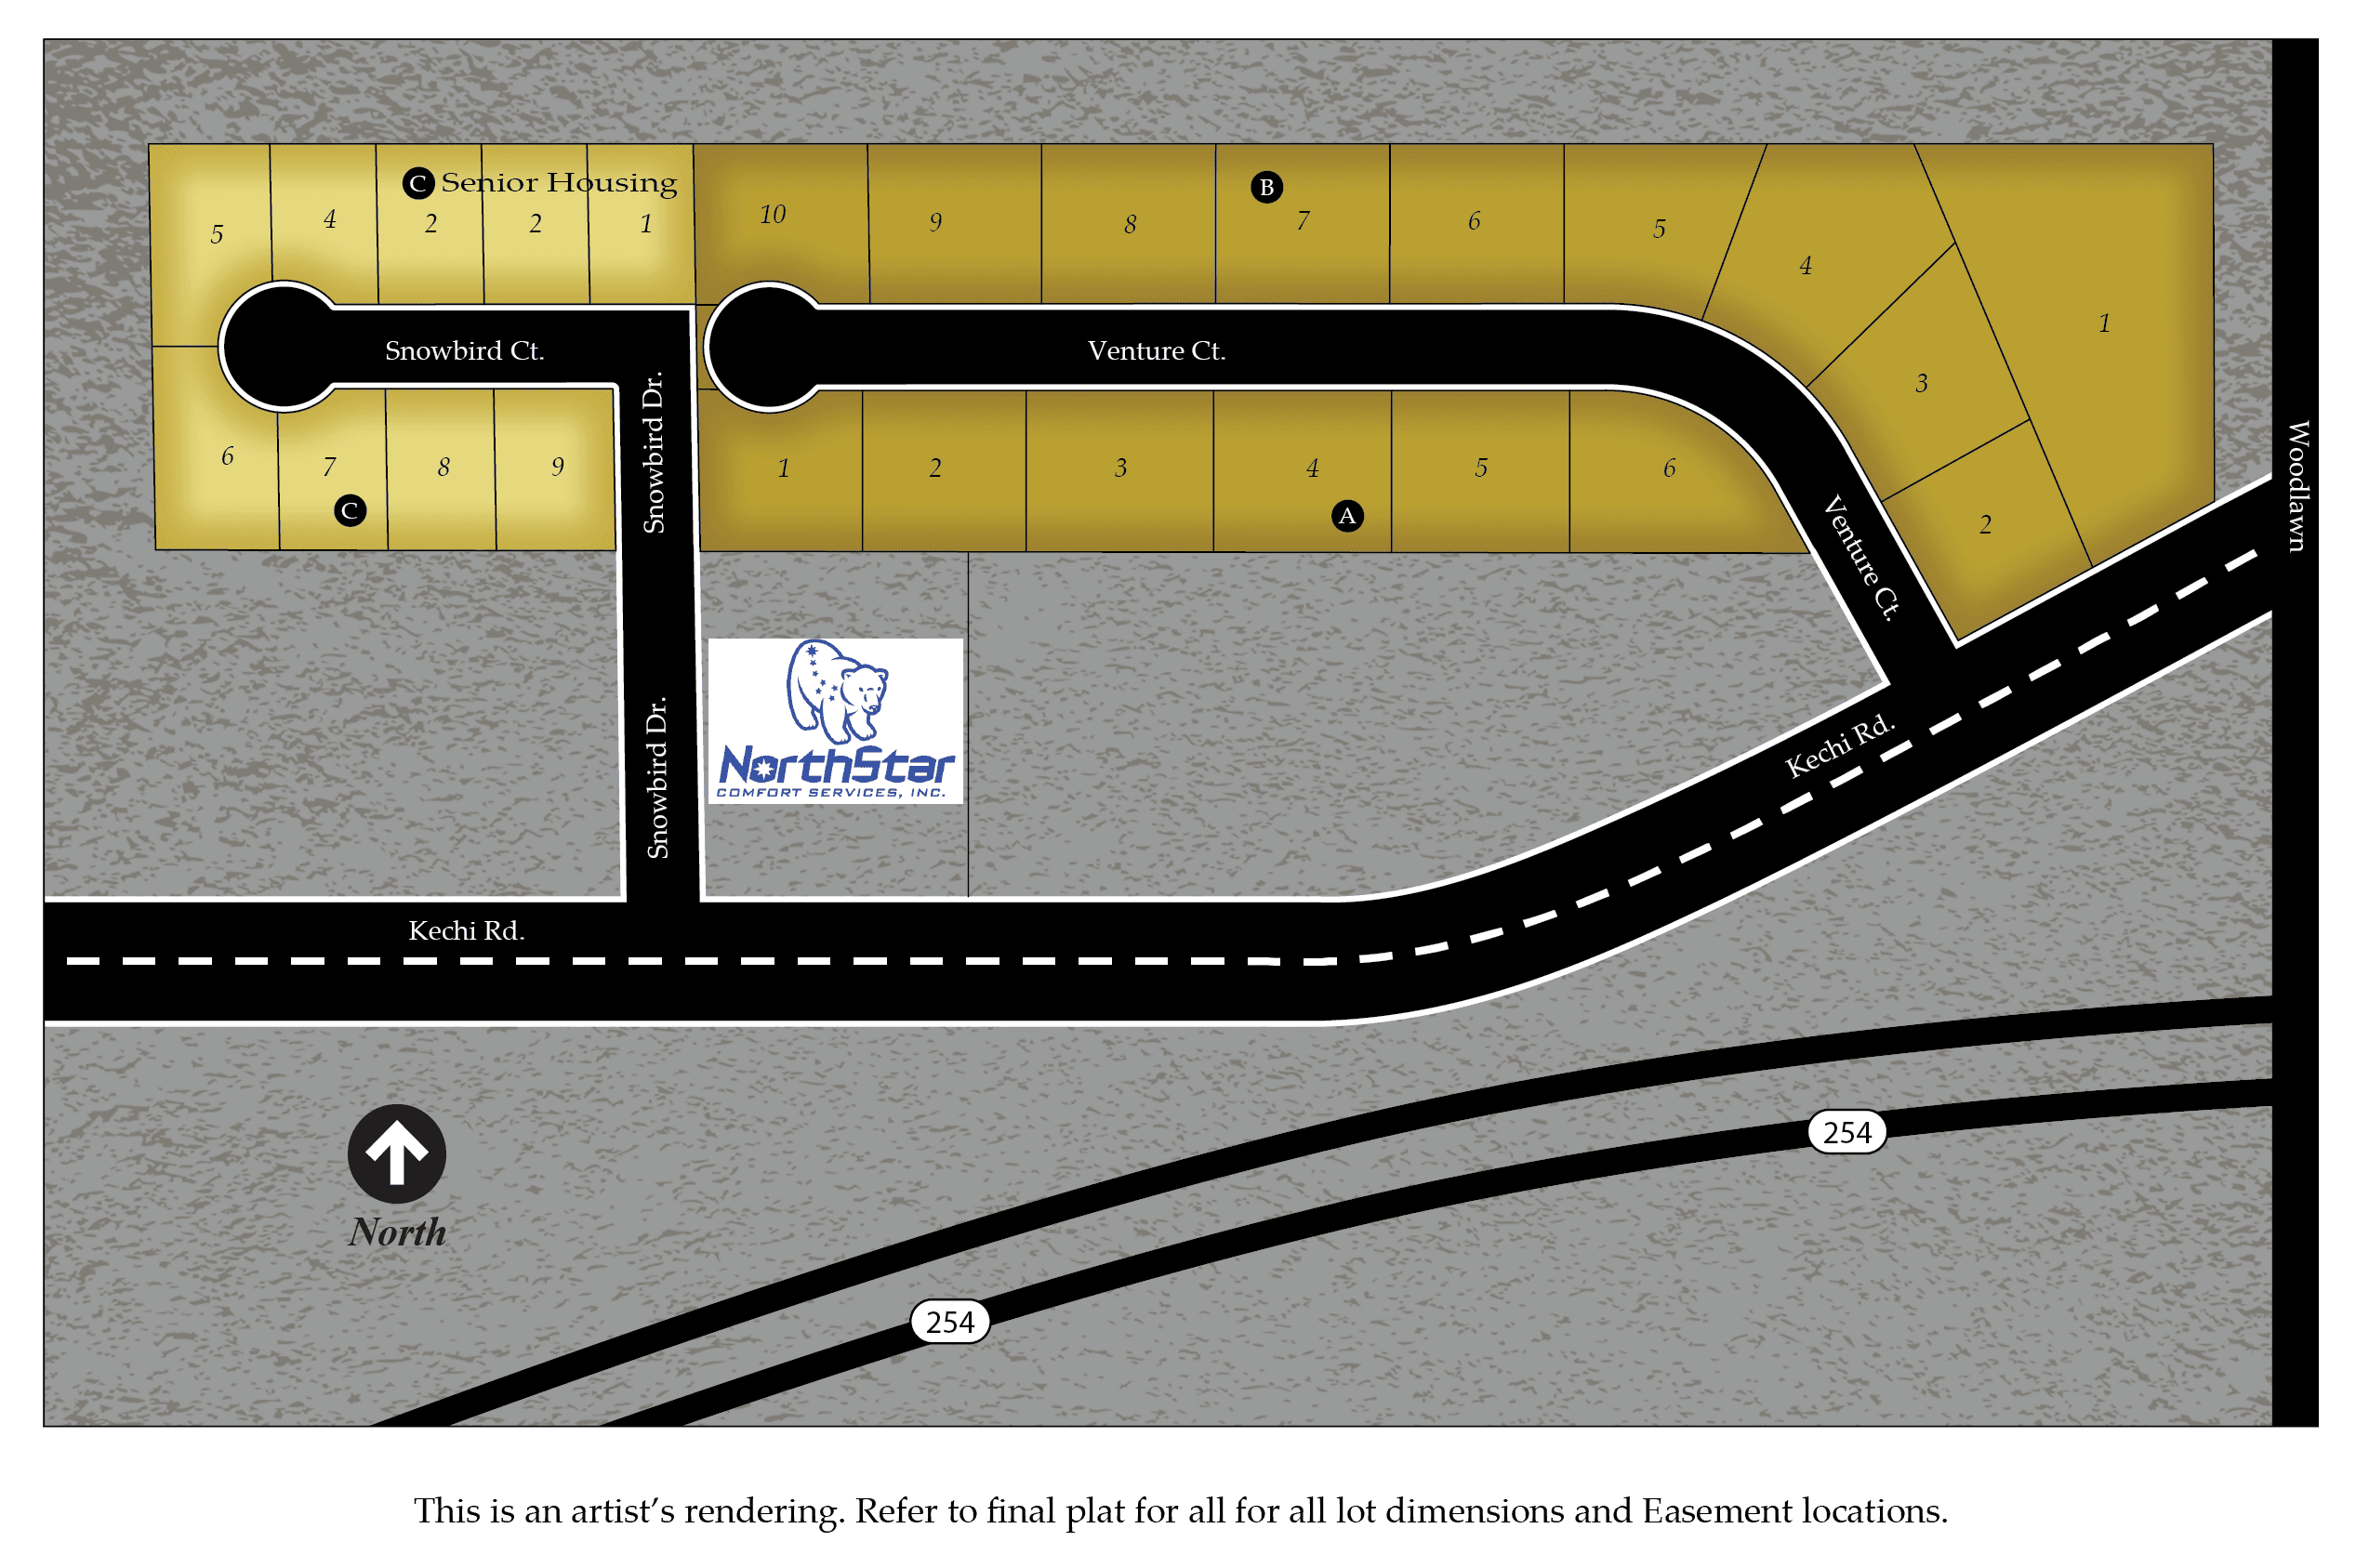 Kechi-Bus-Park-Plat-Map-02